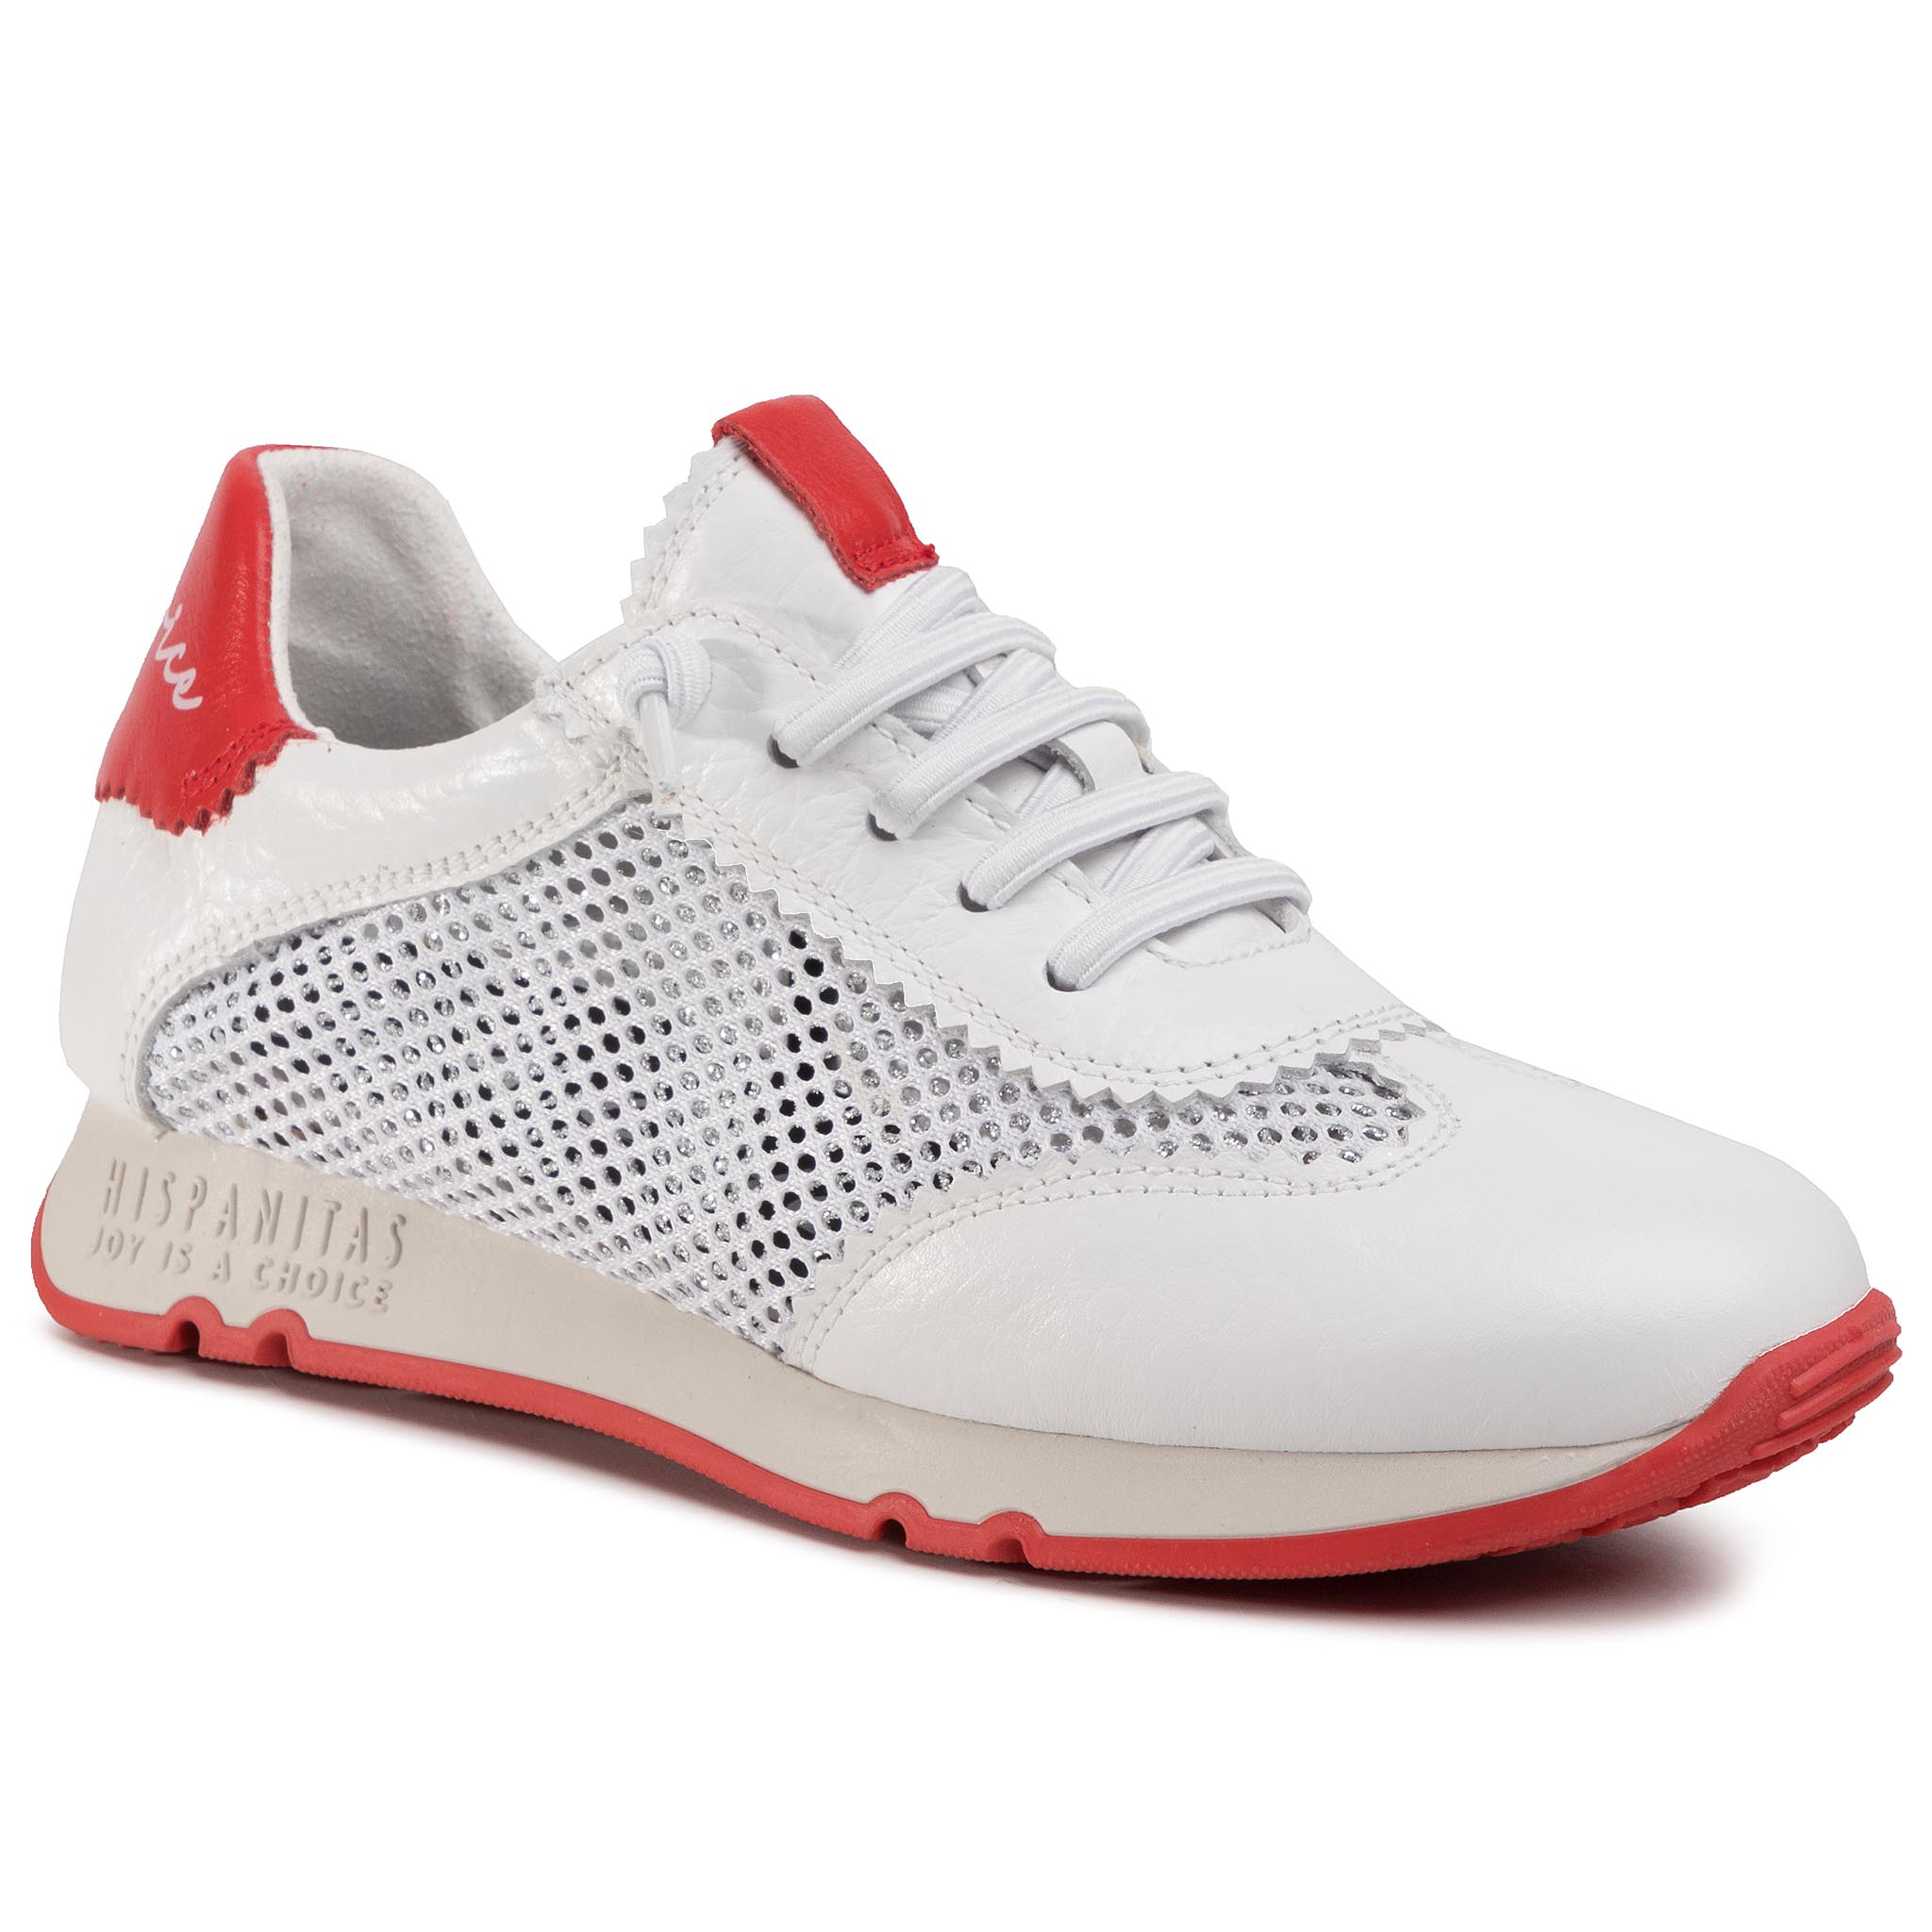 Sneakers HISPANITAS - Kioto HV09973 White